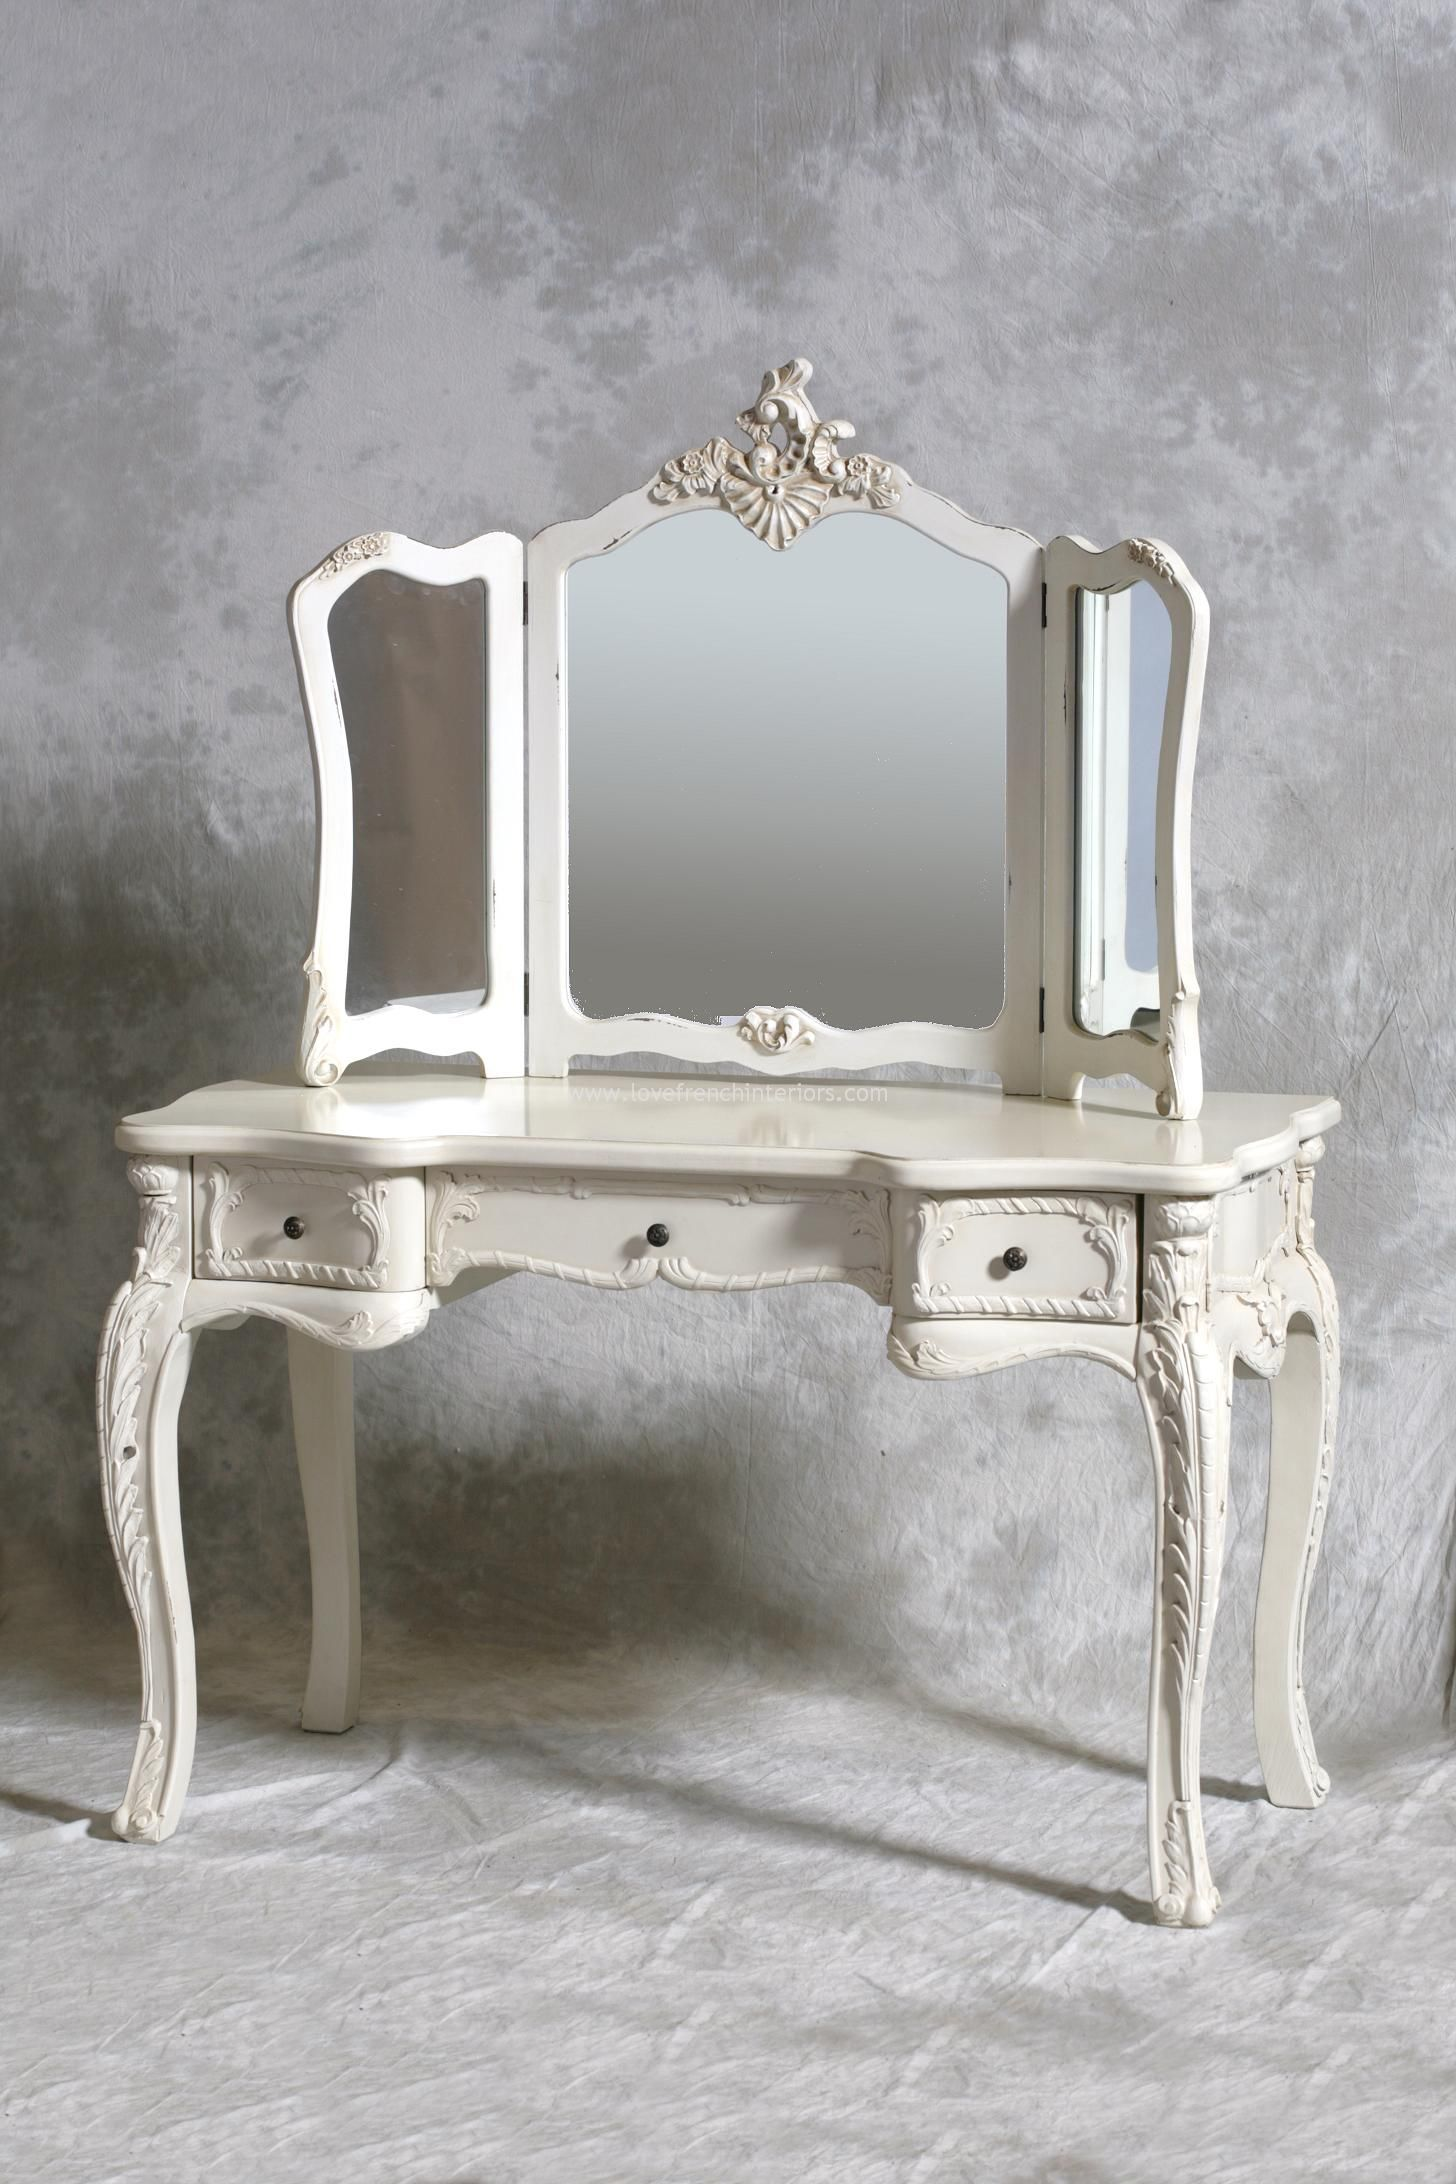 Furniture, French Style Antique And Vintage Makeup Vanity Table With 3  Folding Mirror Set And 3 Drawer Painted With White Color Plus Carving  Wooden Legs ... - Furniture, French Style Antique And Vintage Makeup Vanity Table With